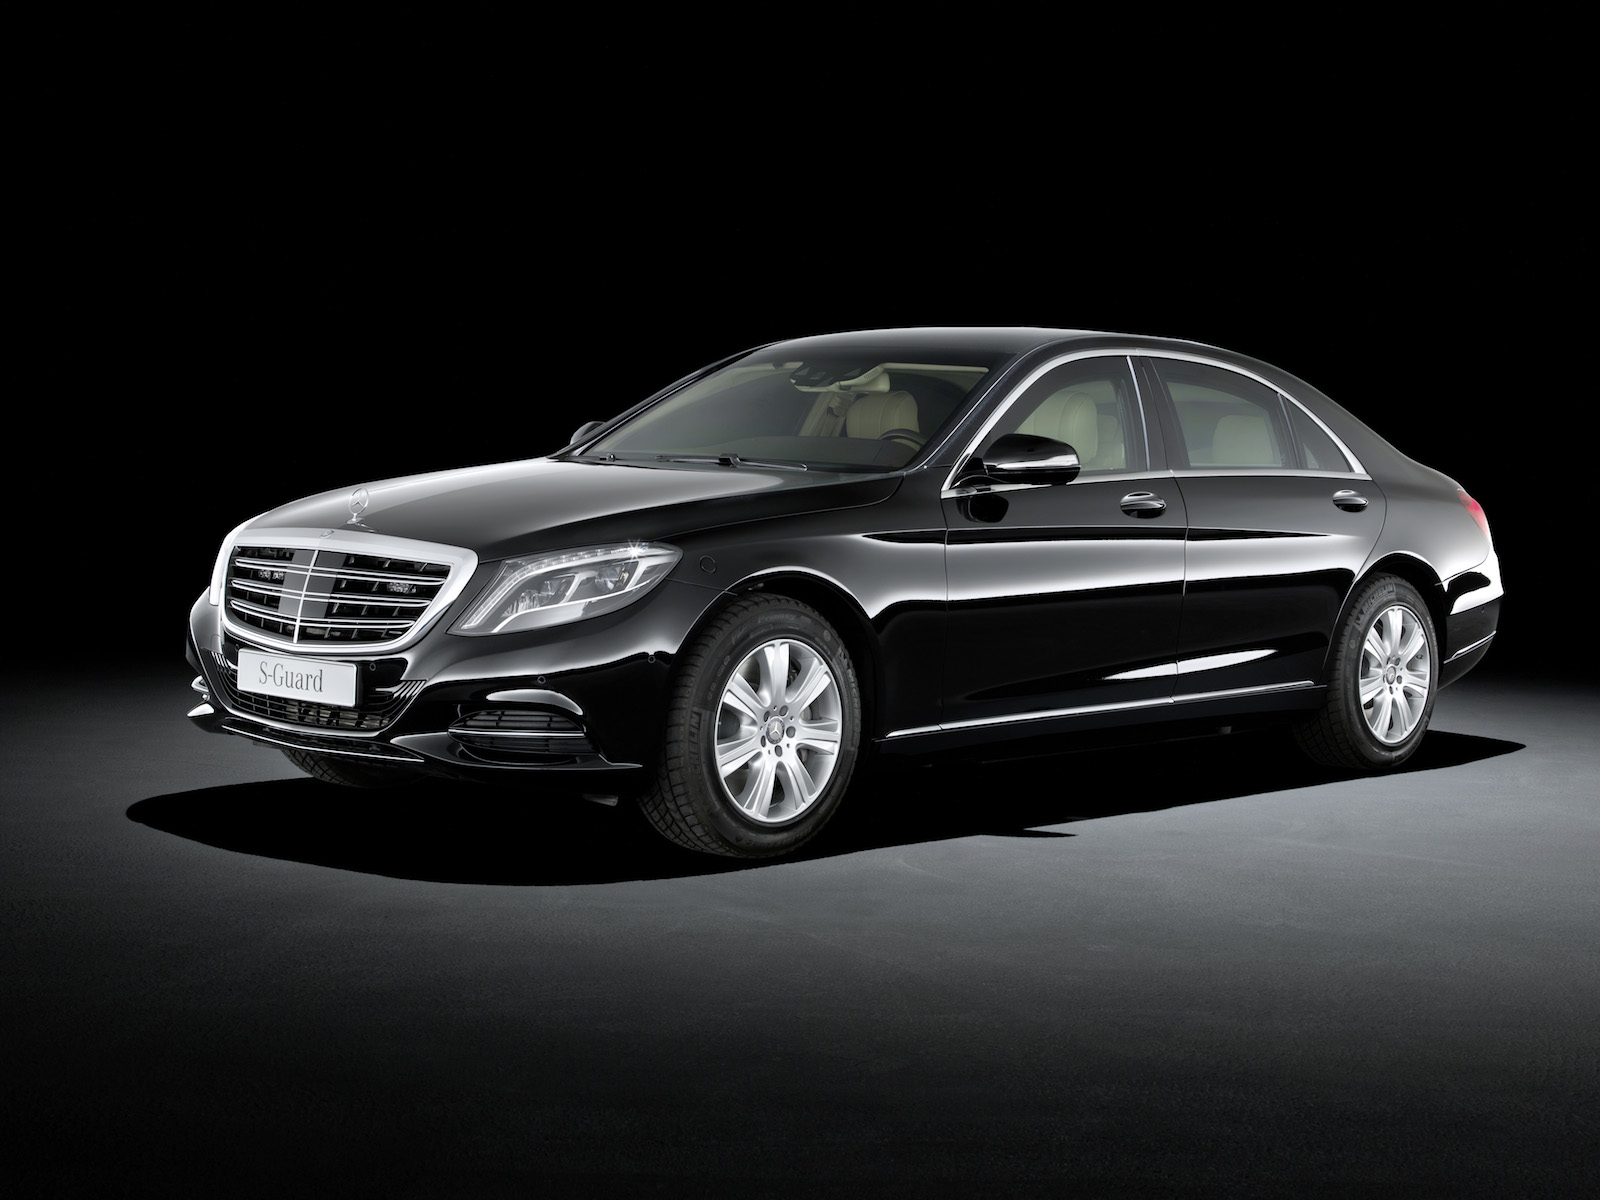 Mercedes-Benz S600 Guard Upgrades To New S-Class Platform, Greater Armor Capability